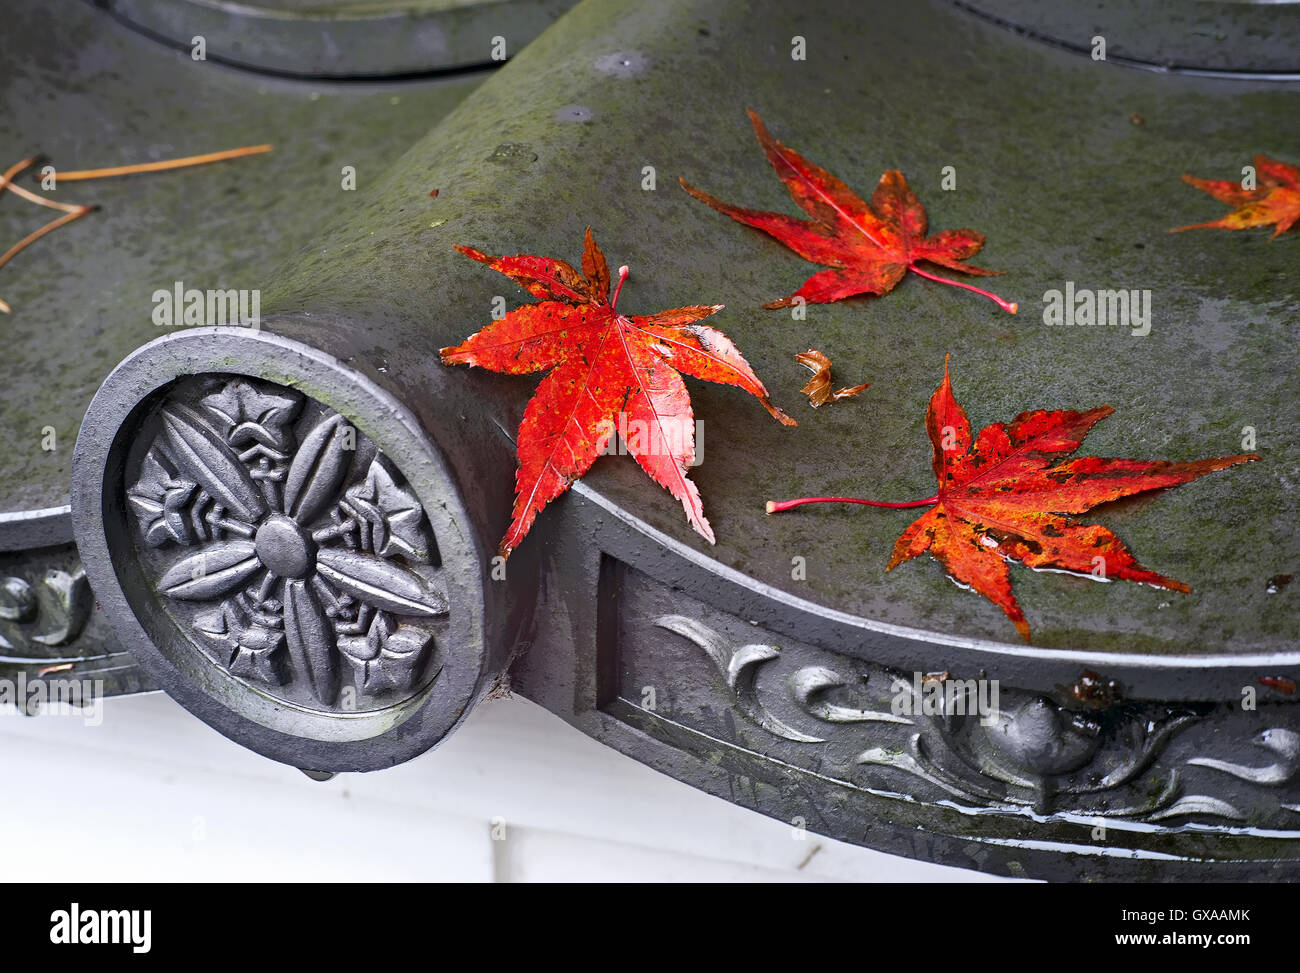 Japan, Honshu island, Kansai, Kyoto, red maple leaf. - Stock Image